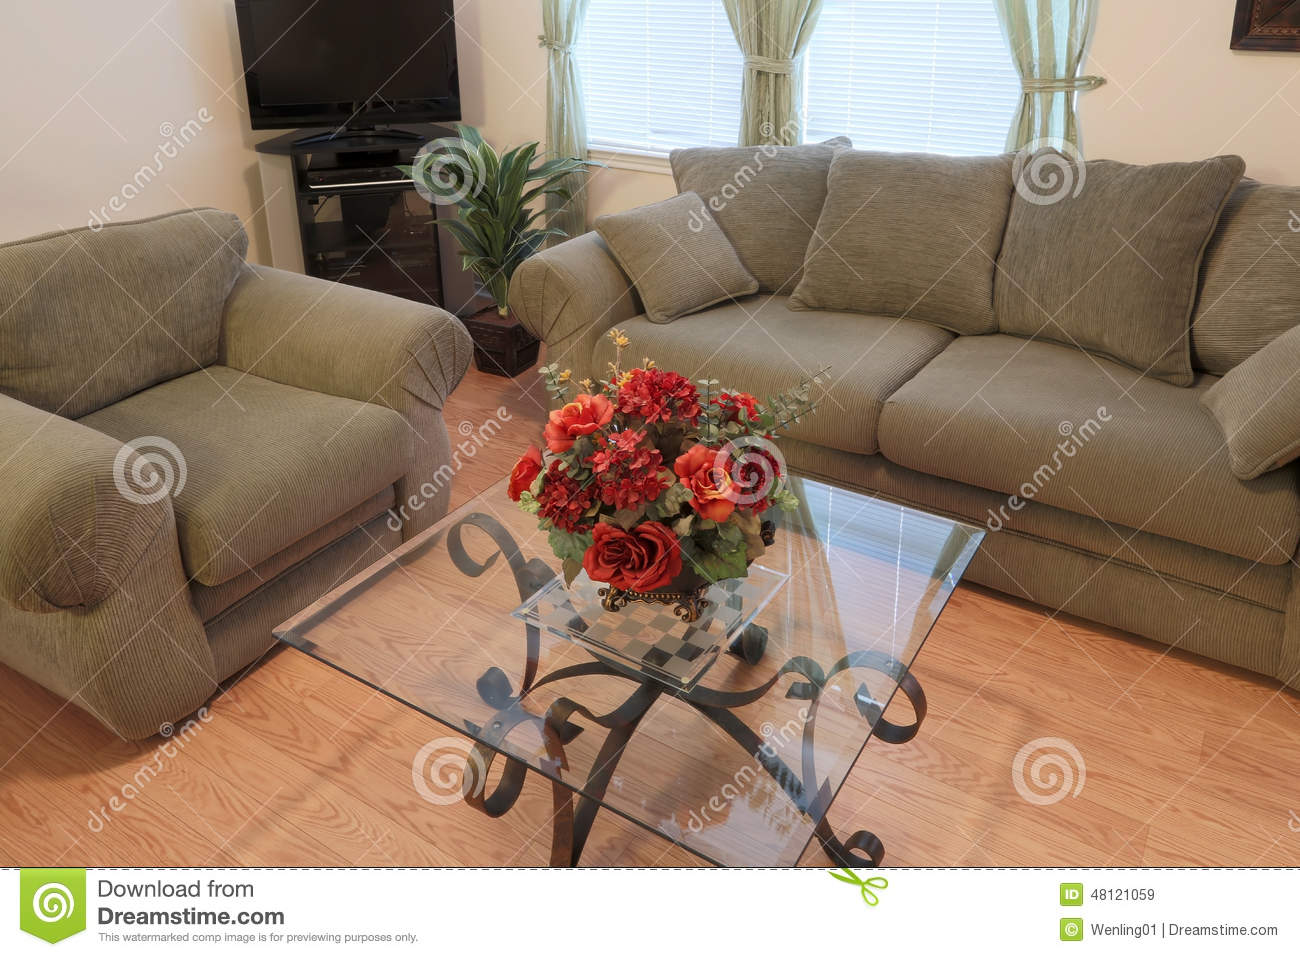 Living Room Background modern family living room background stock photo - image: 48120792